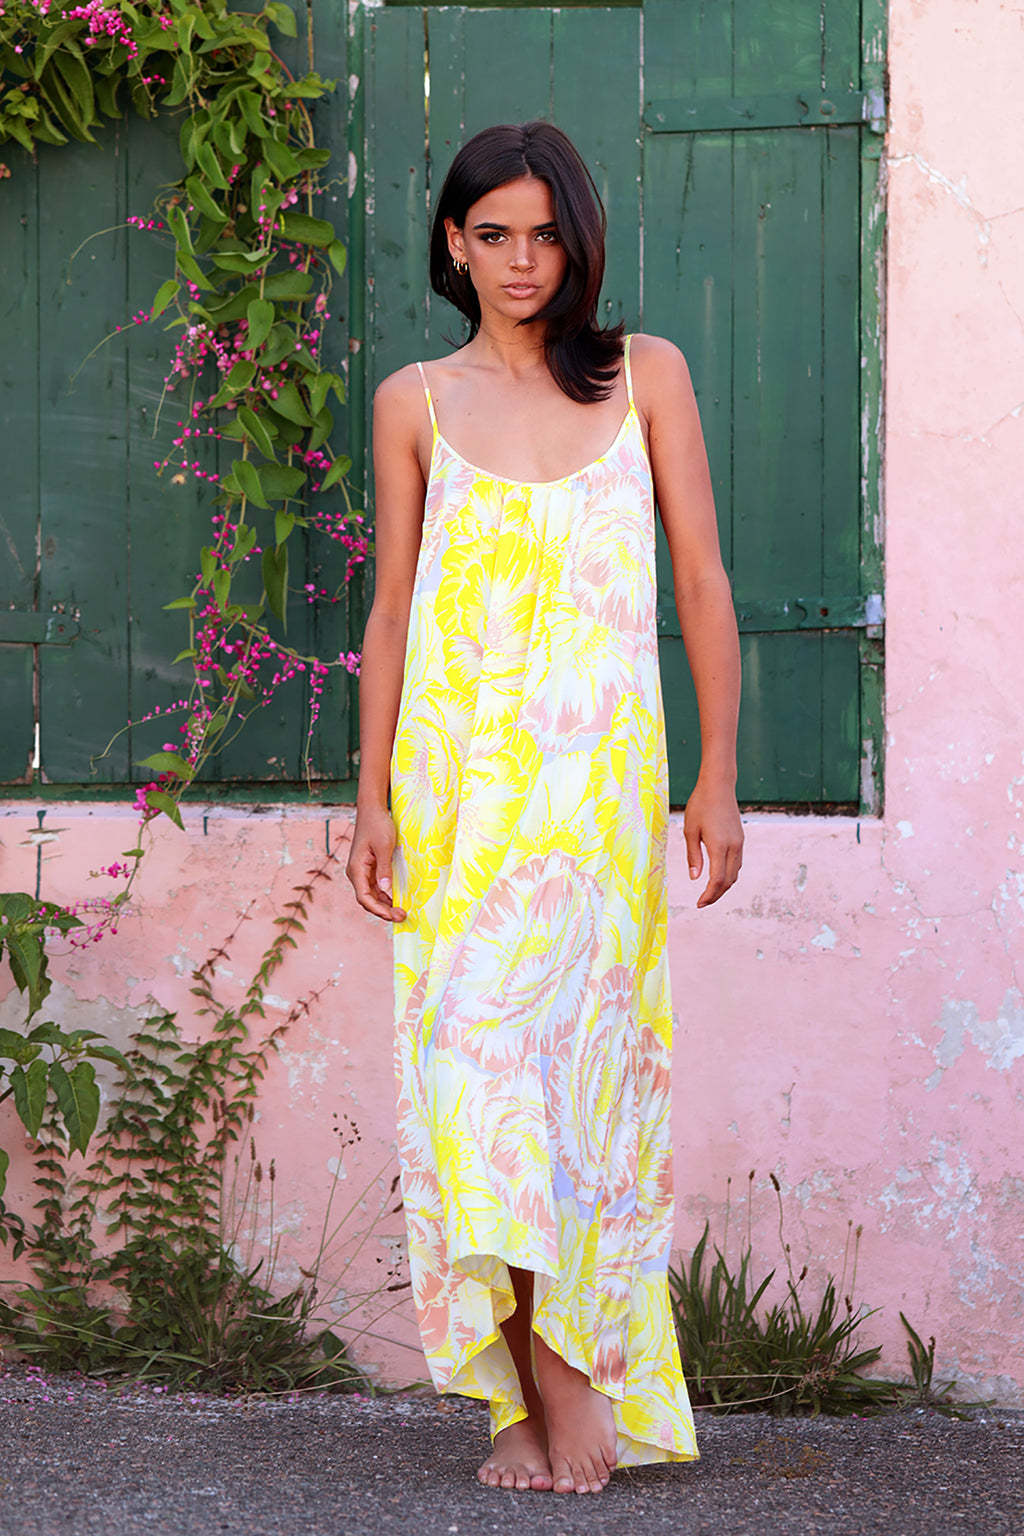 Maxi Long Dress in Lemom Love You print: bright yellow background with soft blush and white flower pattern.